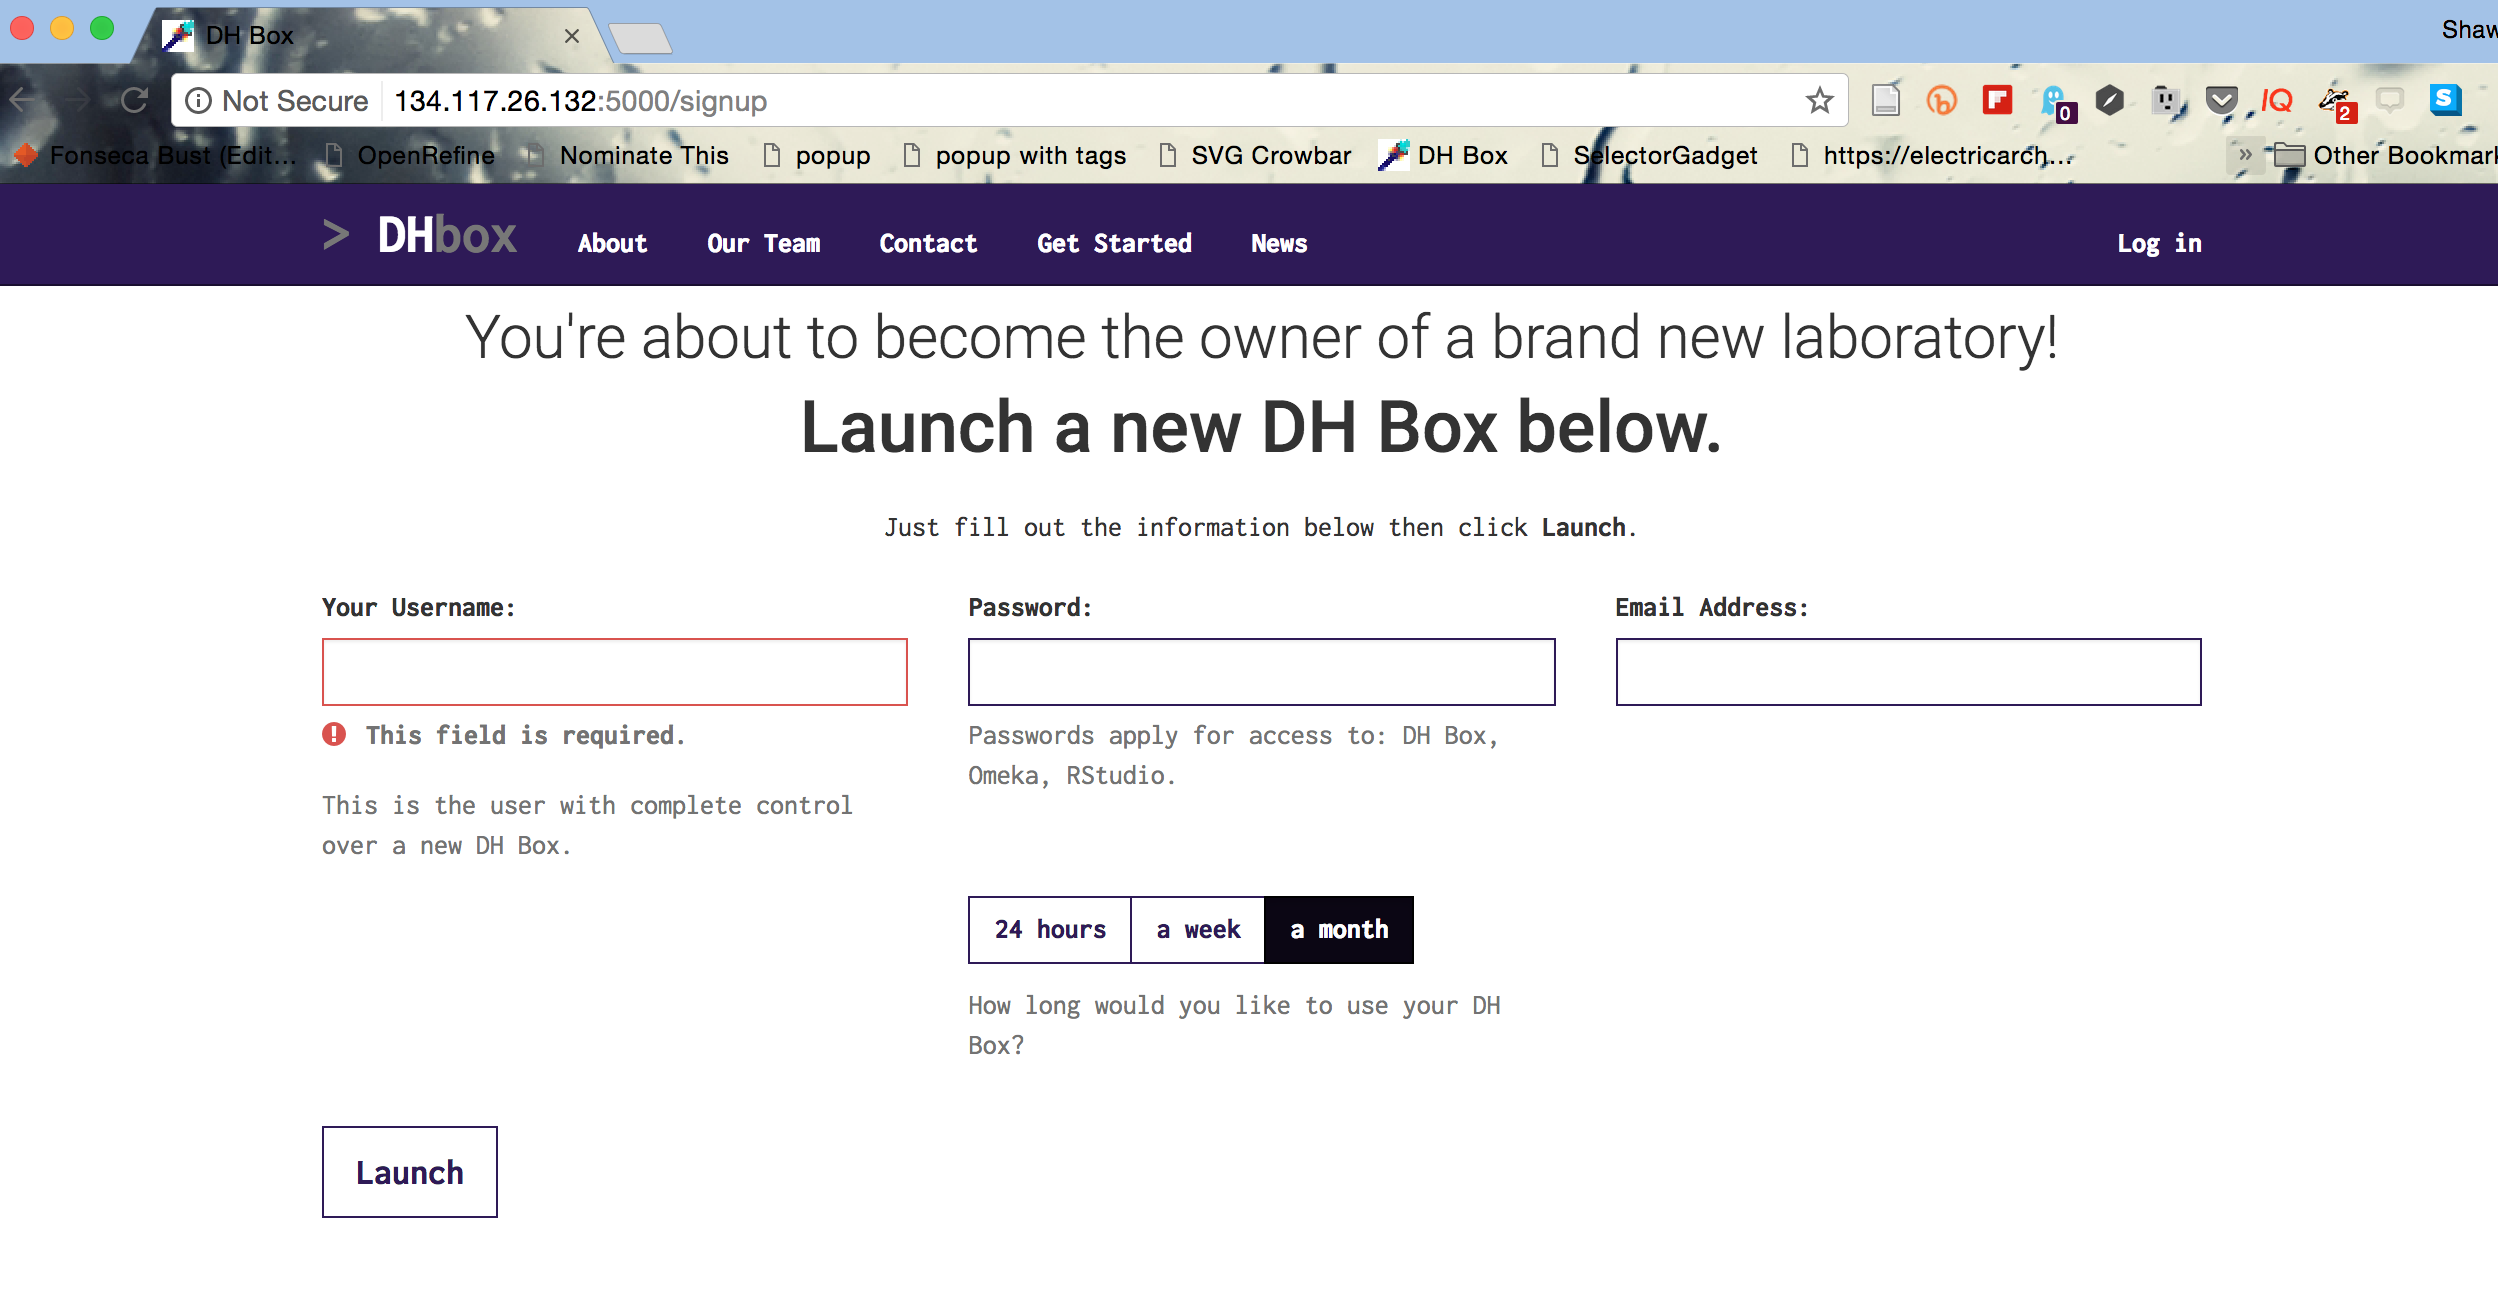 The DHBox signup screen